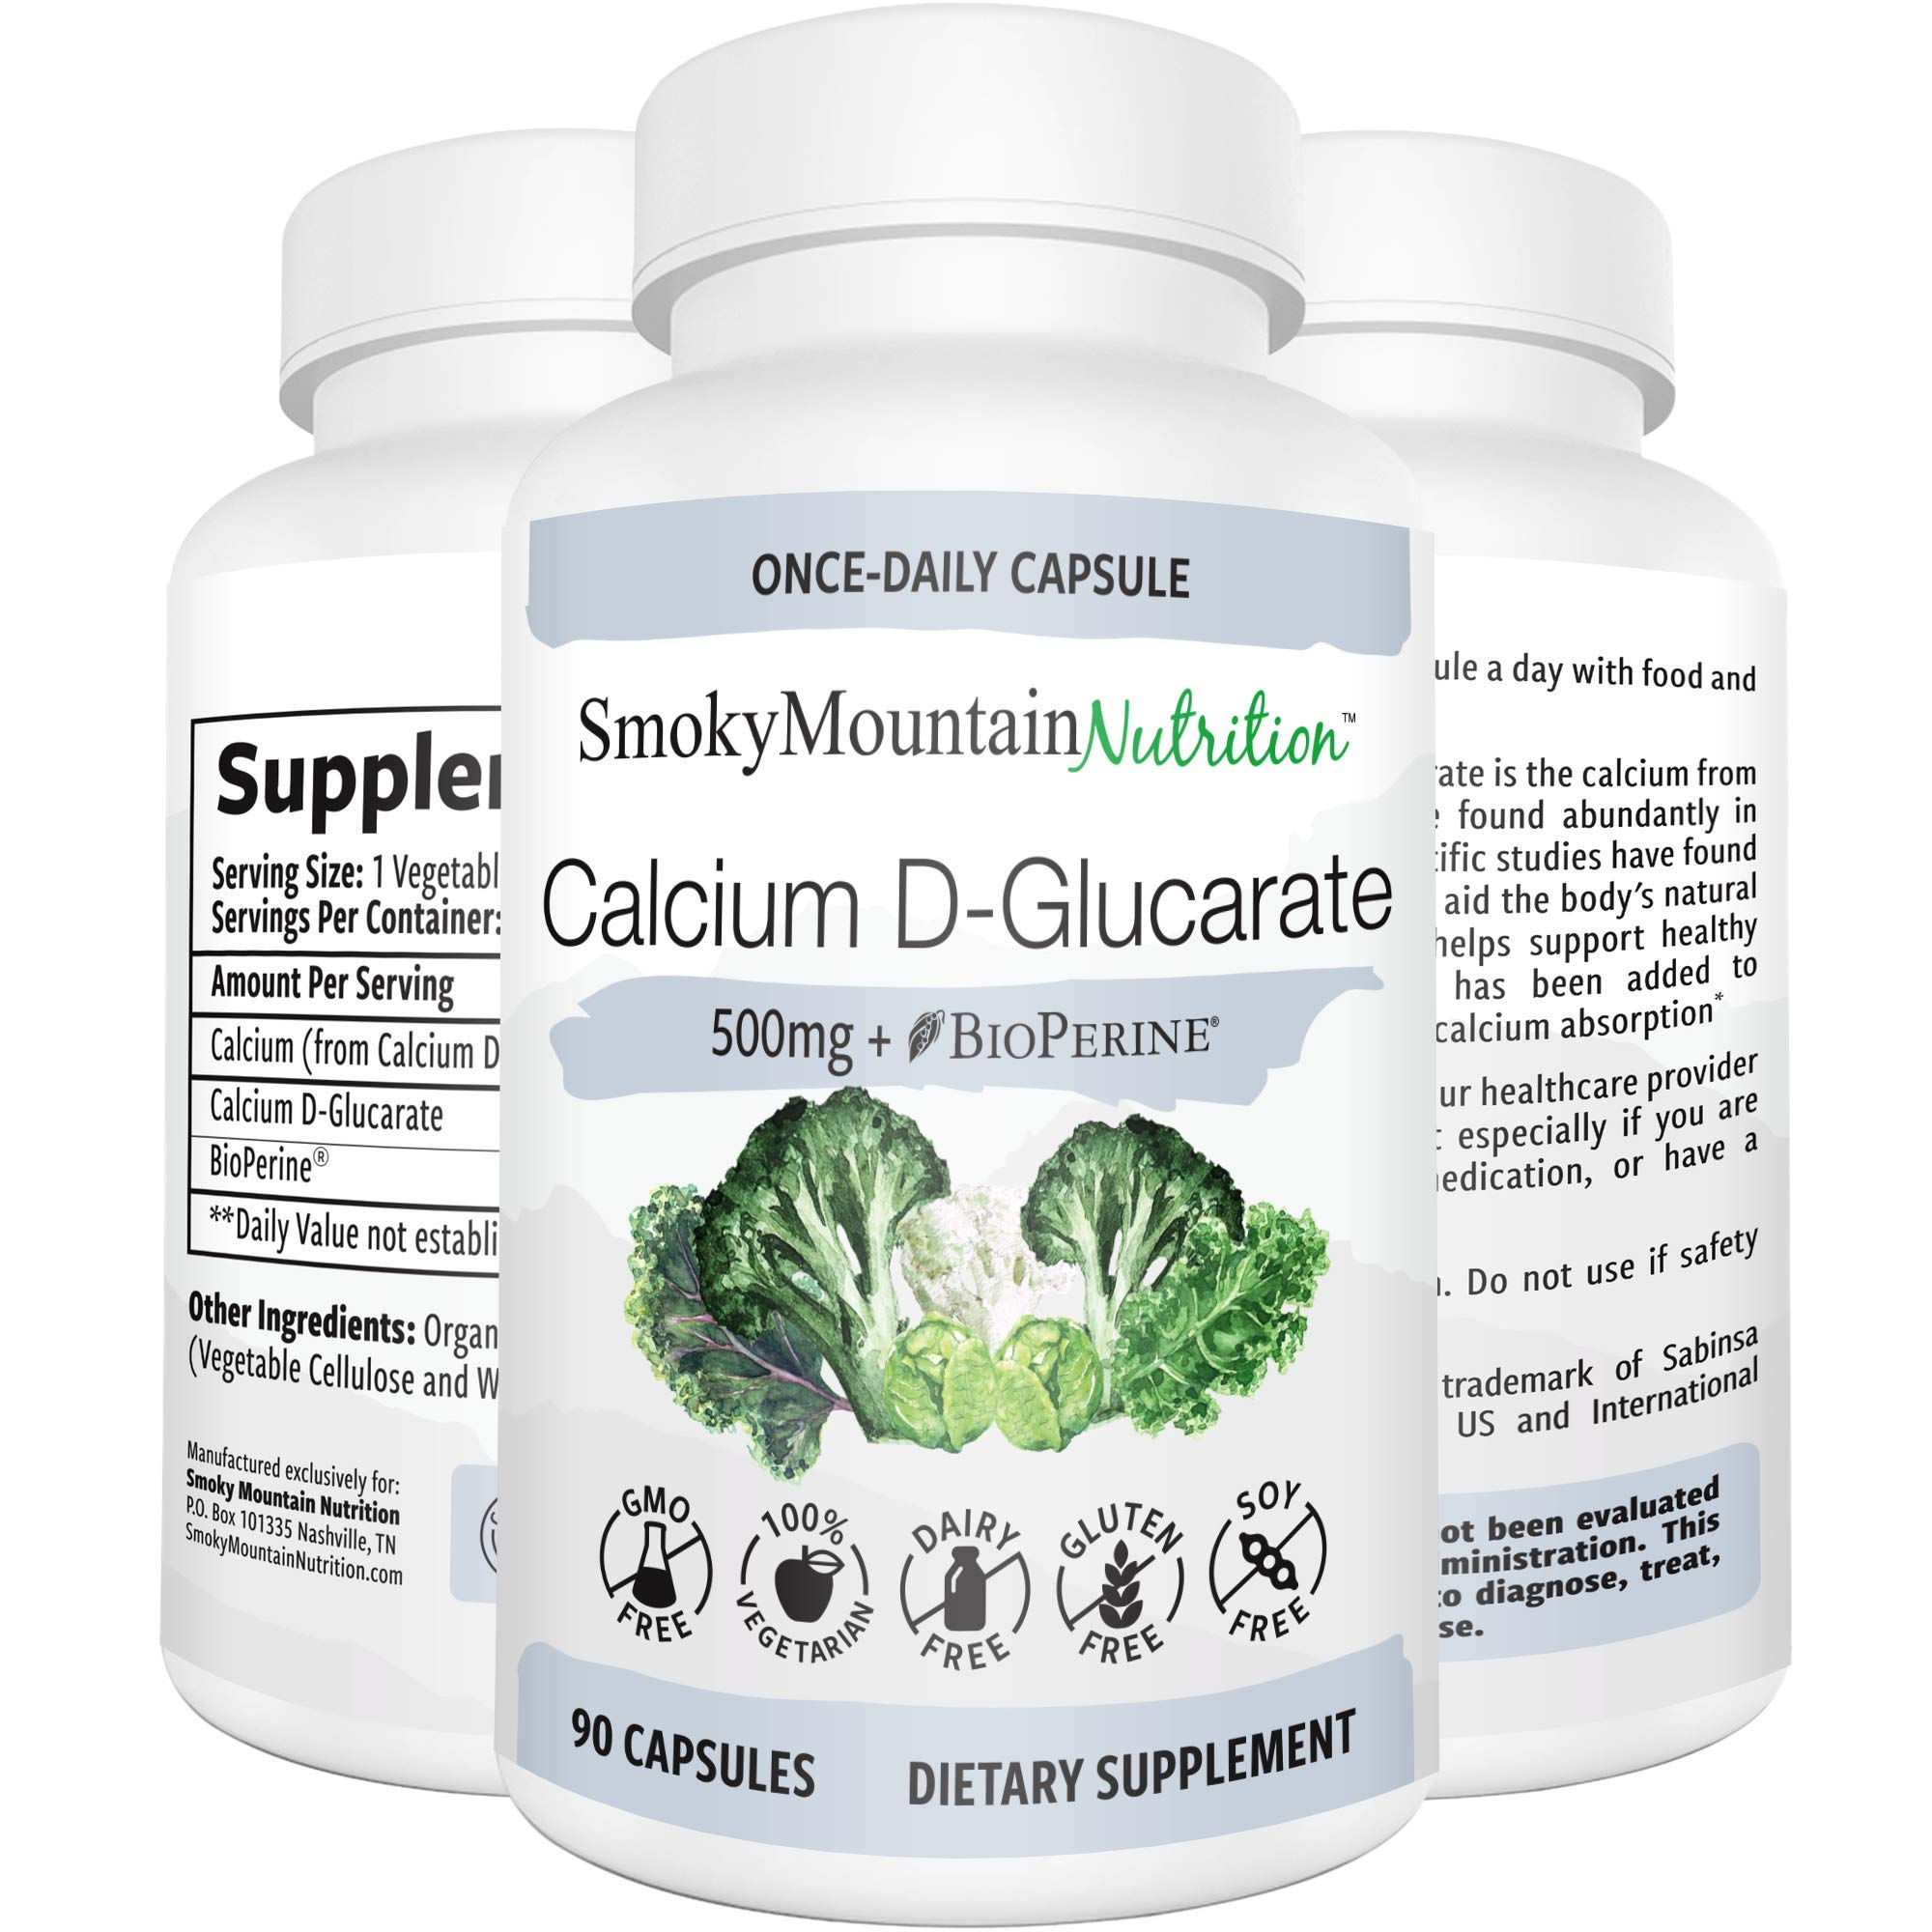 Calcium D-Glucarate 500mg 90 Vegan Capsules (3-Month Supply) CDG for Liver Detox & Cleanse, Weight Loss, Prostate, Metabolism, Menopause. Non-GMO, Soy-Free, Keto-Friendly by Smoky Mountain Naturals